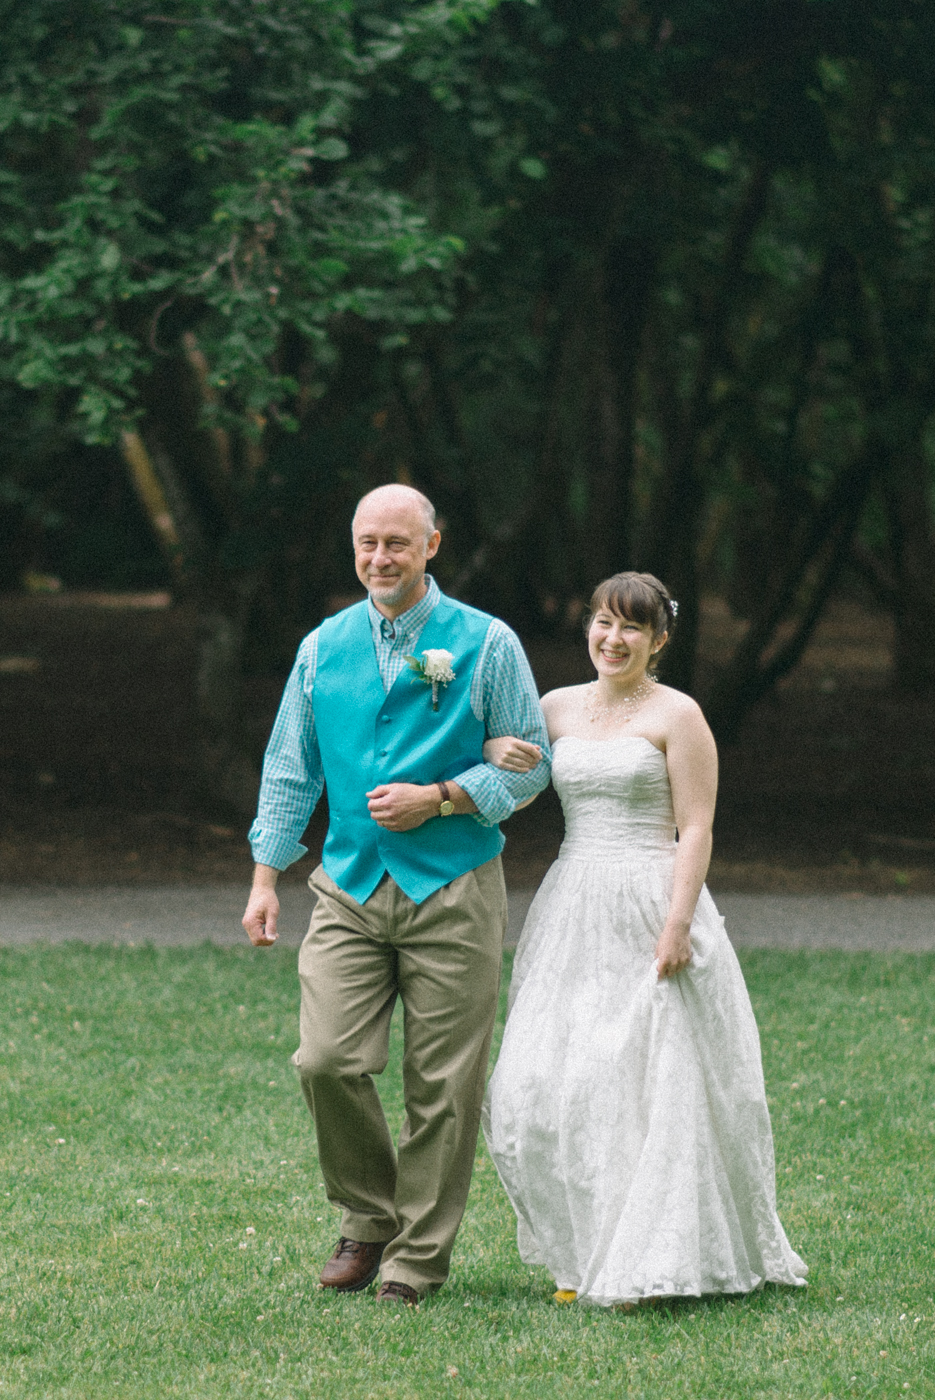 Dorris-Ranch-Daddy-daughter-ceremony-walking-down-the-aisle-Photos-Springfield-Oregon-Shelley-Marie-Photo-1